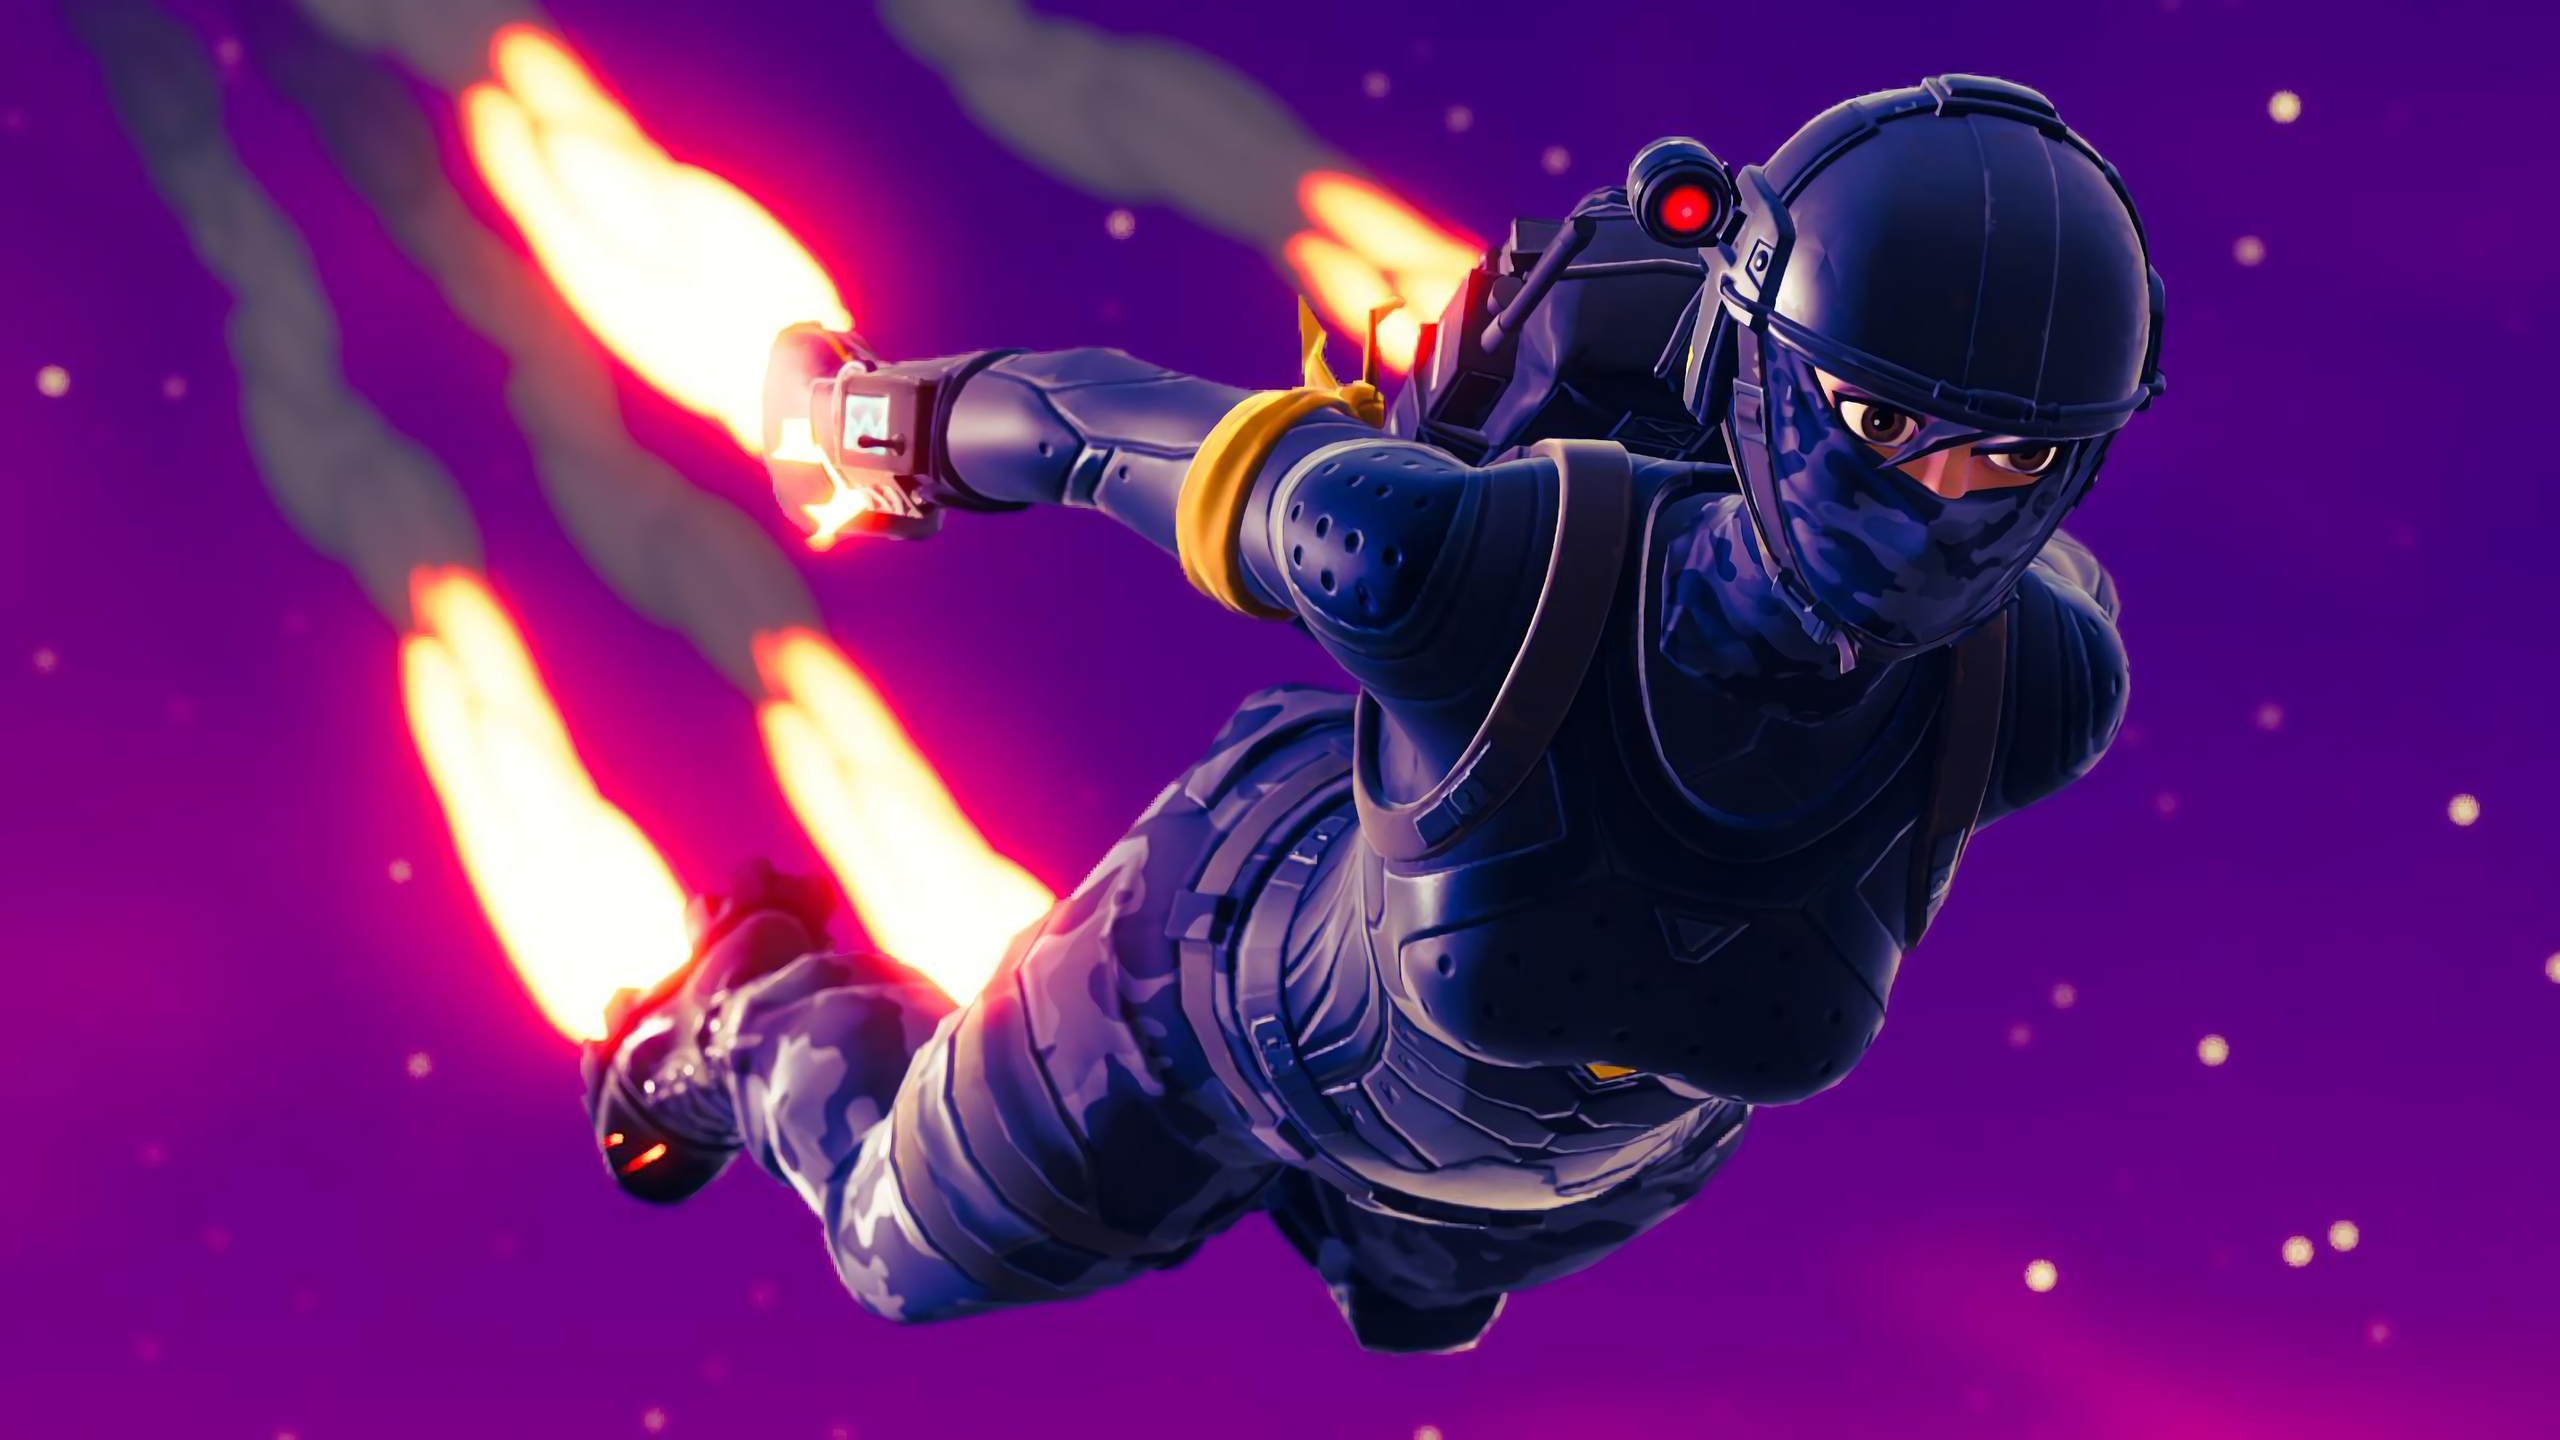 2560x1440 Elite Agent Skydive Fortnite Battle Royale 1440p